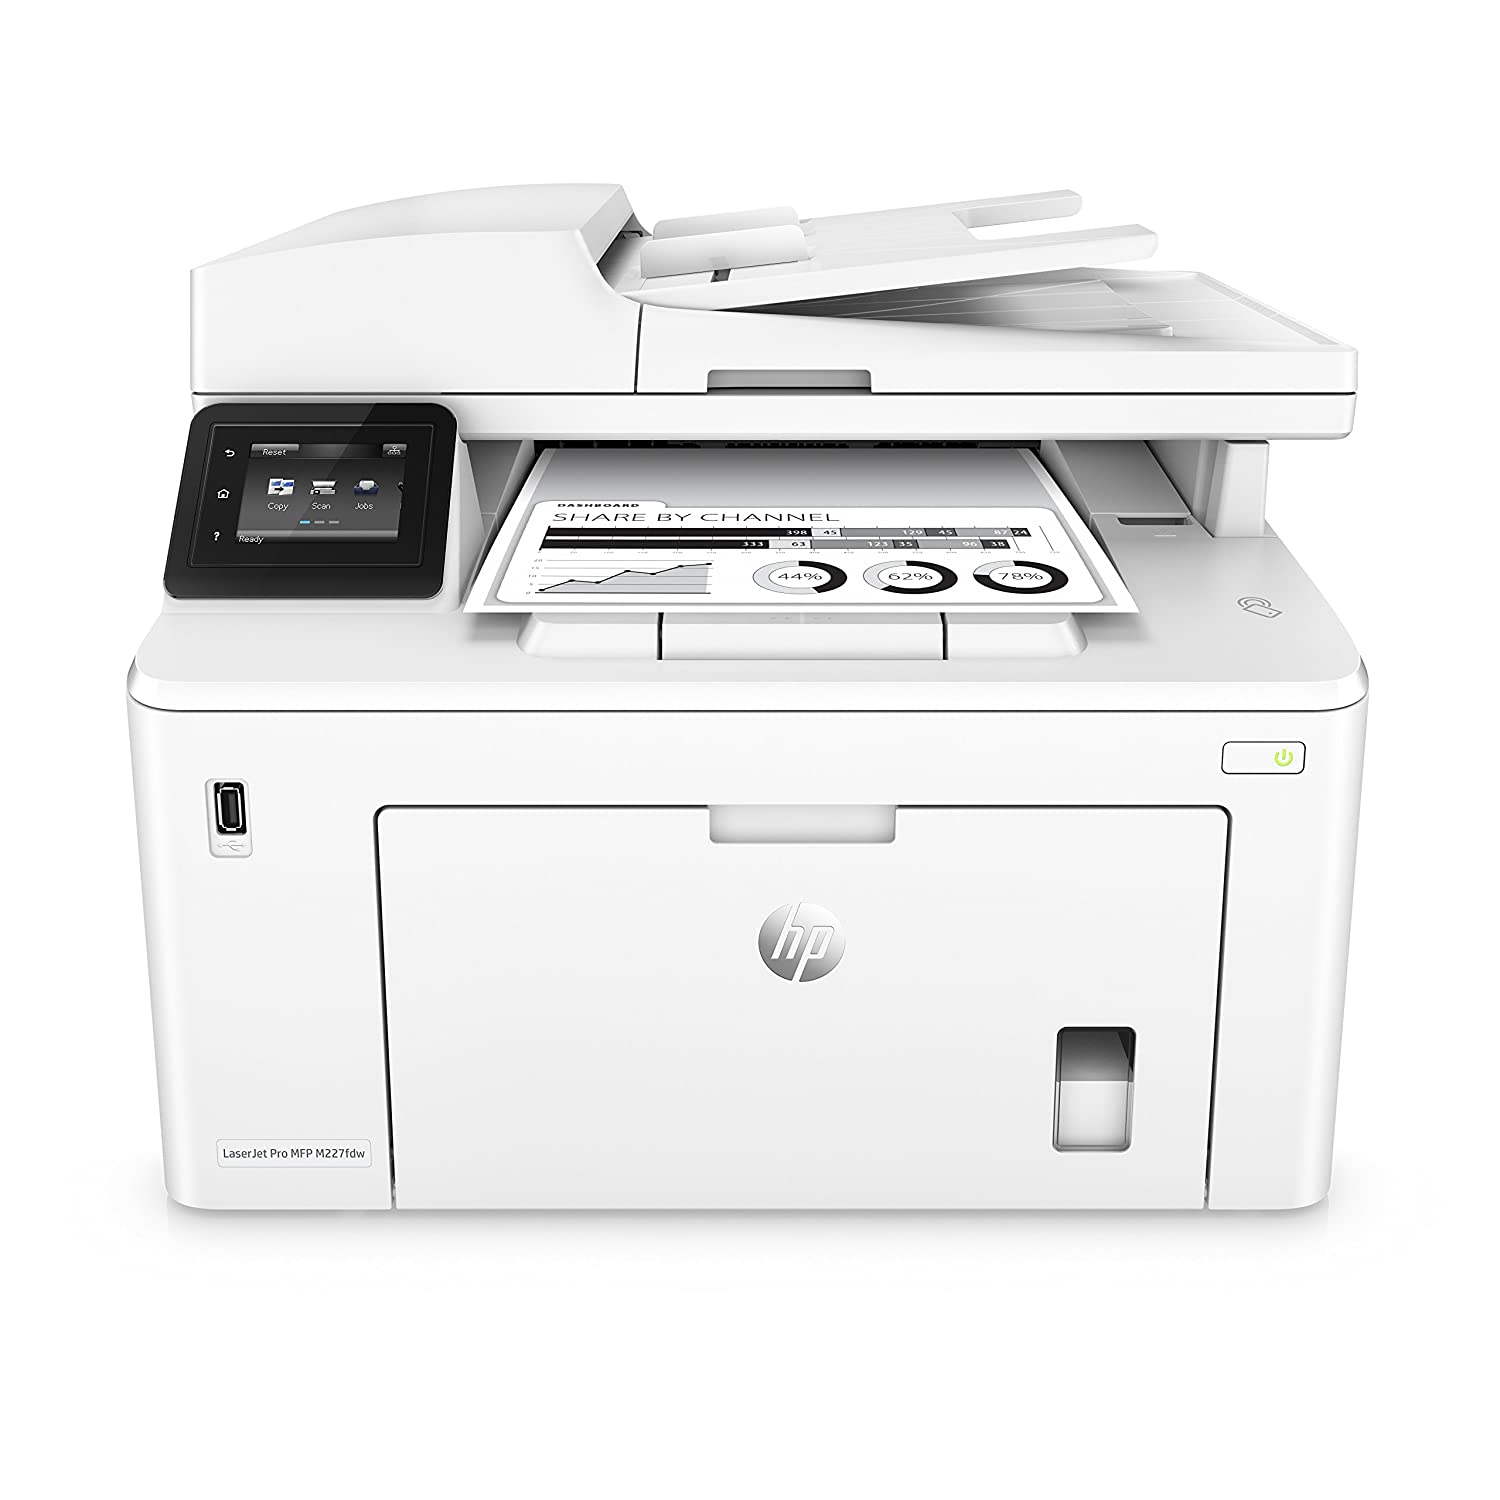 HP LaserJet Pro M227fdw All-in-One Wireless Laser Printer, Amazon Dash Replenishment ready (G3Q75A). Replaces HP M225dw Laser Printer